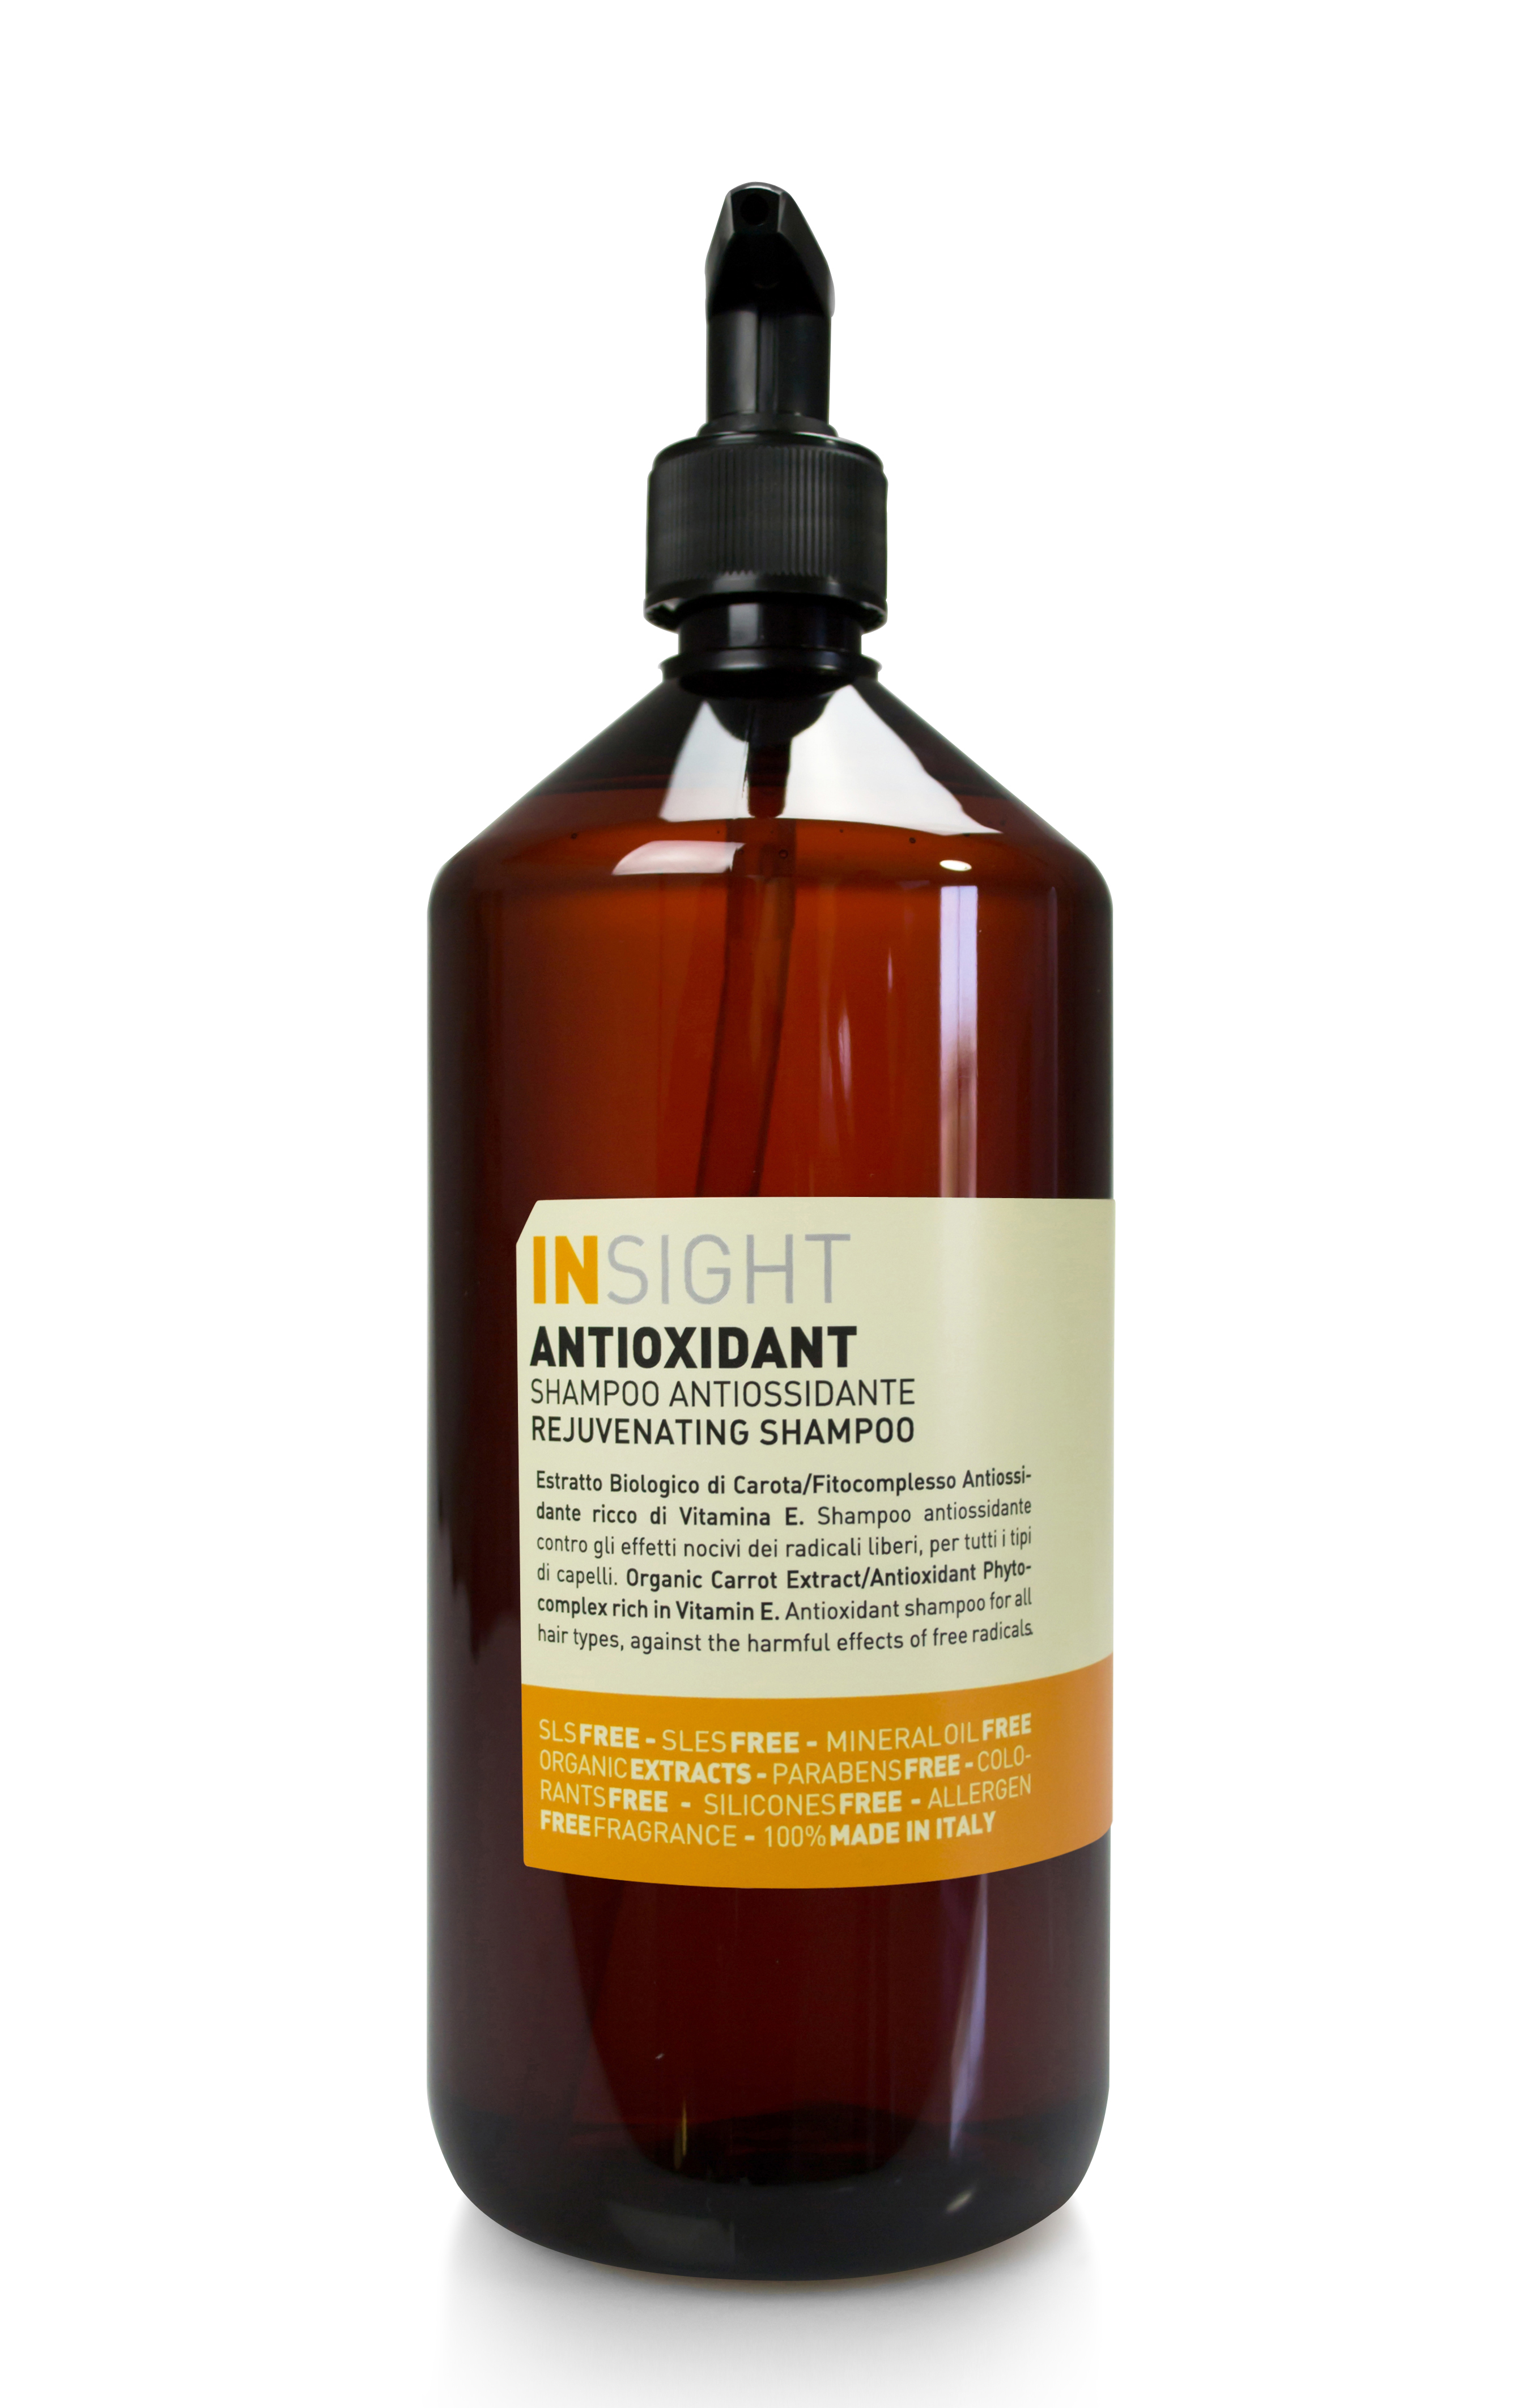 ANTIOXIDANT REJUVENATING SHAMPOO